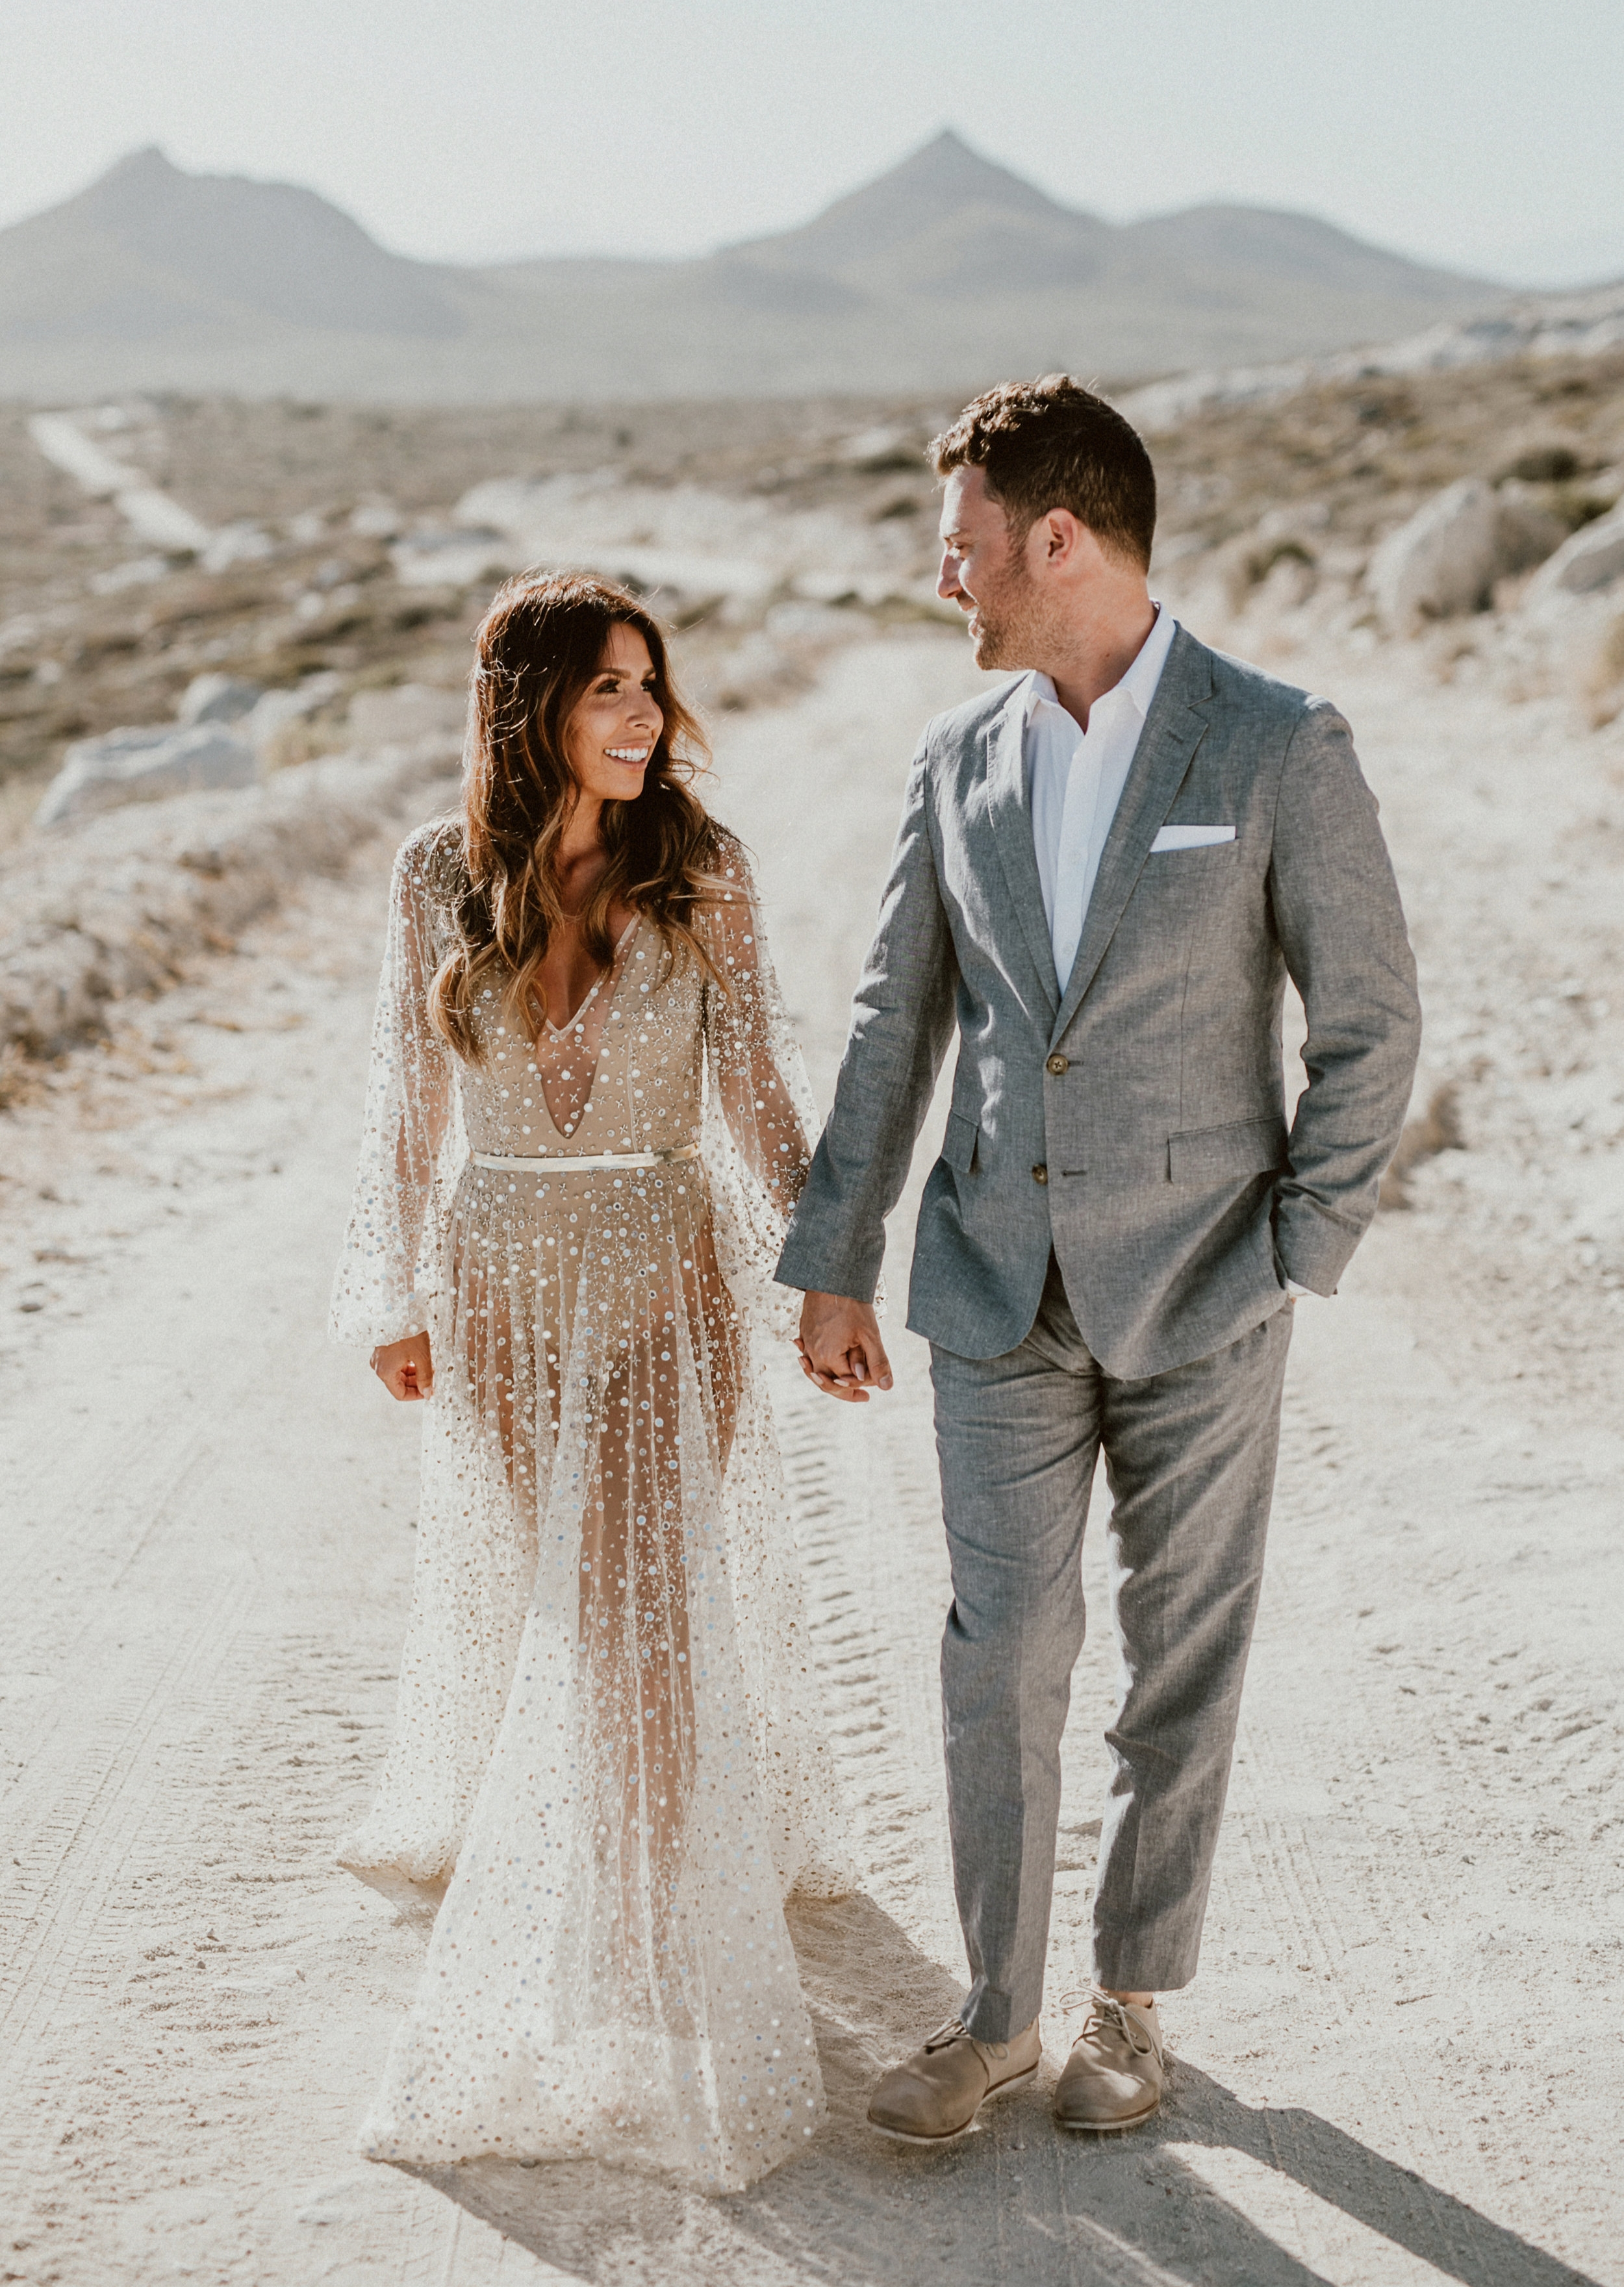 Nala Dress by Chosen by One Day Bridal - Post Wedding Photoshoot in Los Cabos, Mexico   Everyday Pursuits Ashley + Andy